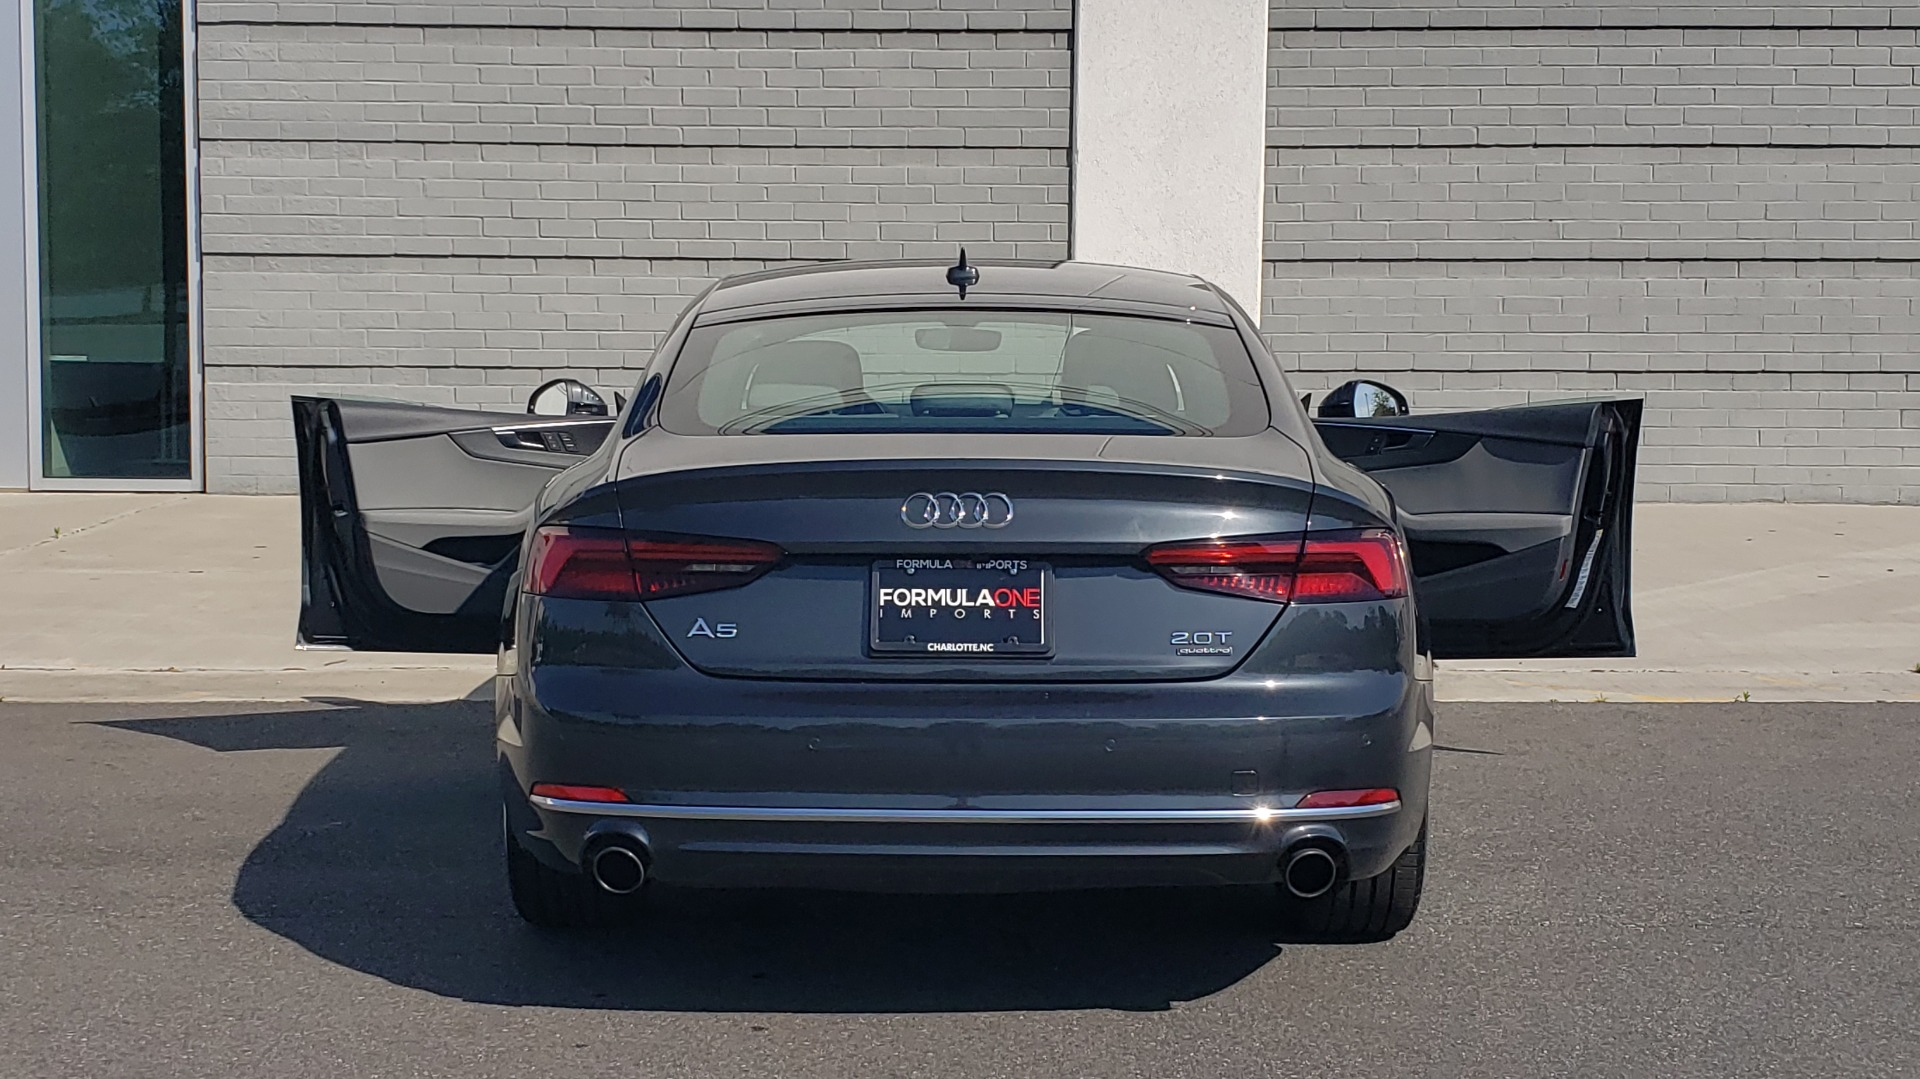 Used 2018 Audi A5 SPORTBACK PREMIUM PLUS 2.0T / AWD / NAV / B&O SND / SUNROOF / REARVIEW for sale Sold at Formula Imports in Charlotte NC 28227 33